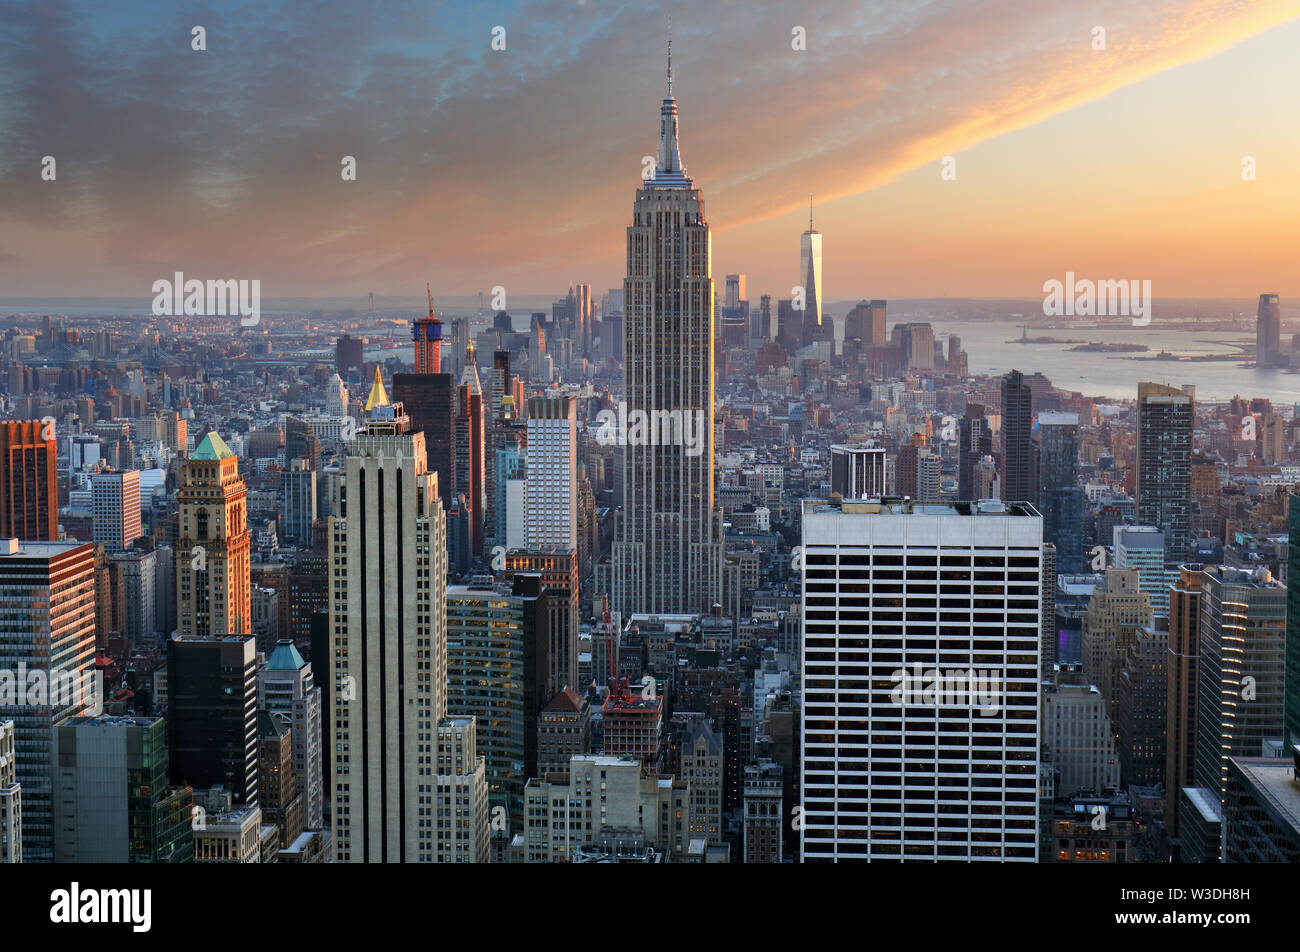 New York City. Manhattan downtown skyline with illuminated Empire State Building and skyscrapers at sunset. - Stock Image